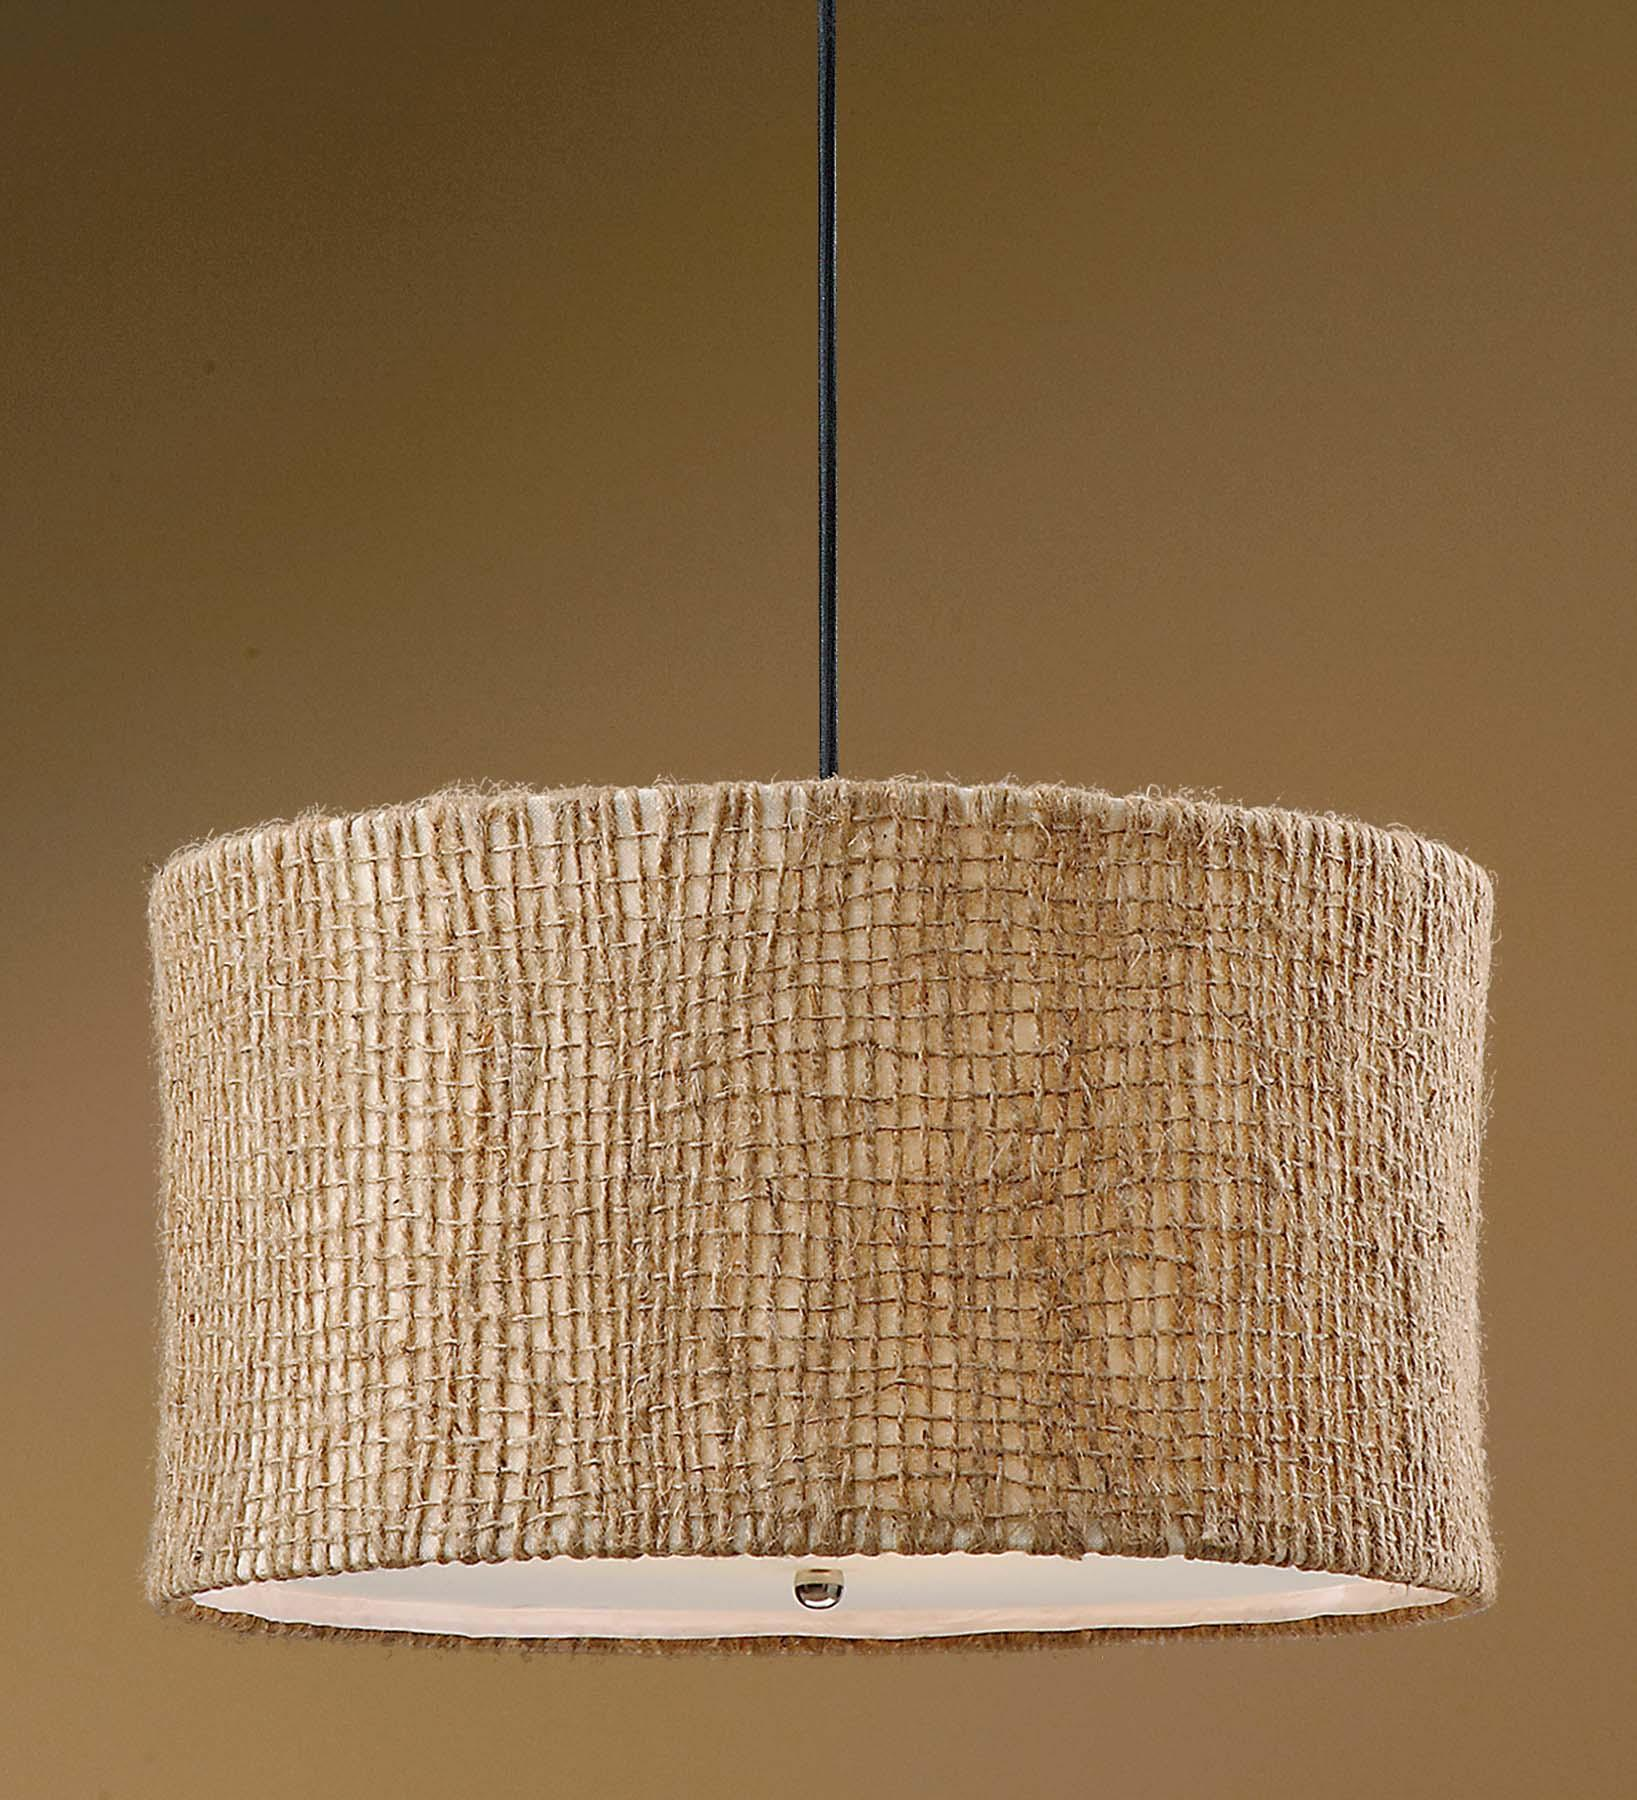 Uttermost Lighting Fixtures Burleson 3 Light Hanging Shade - Item Number: 21935